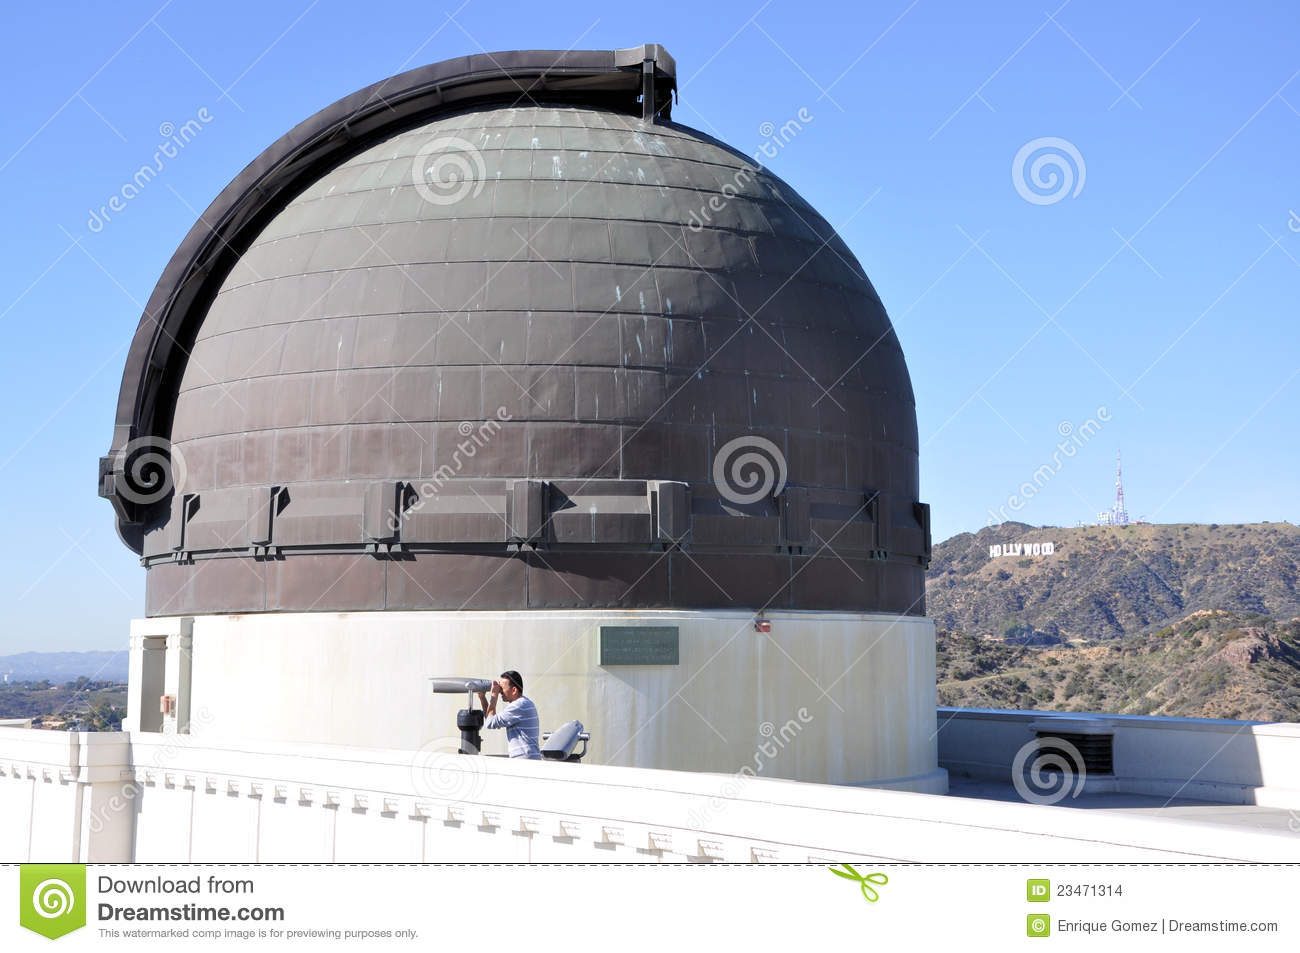 Griffith observatorium